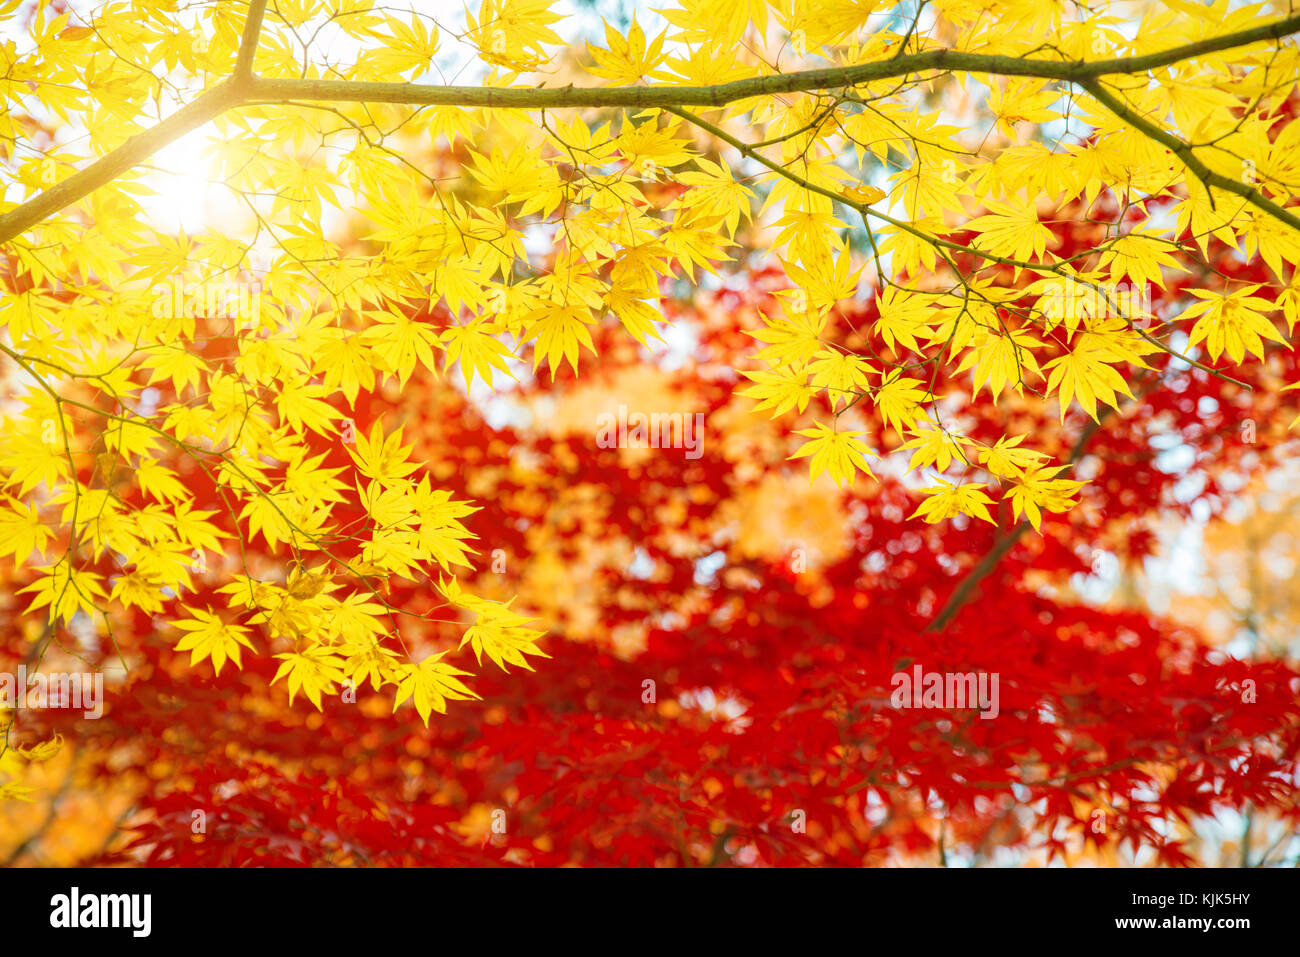 Red and Yellow maple leaves in autumn season with blue sky blurred background, taken from Japan. - Stock Image